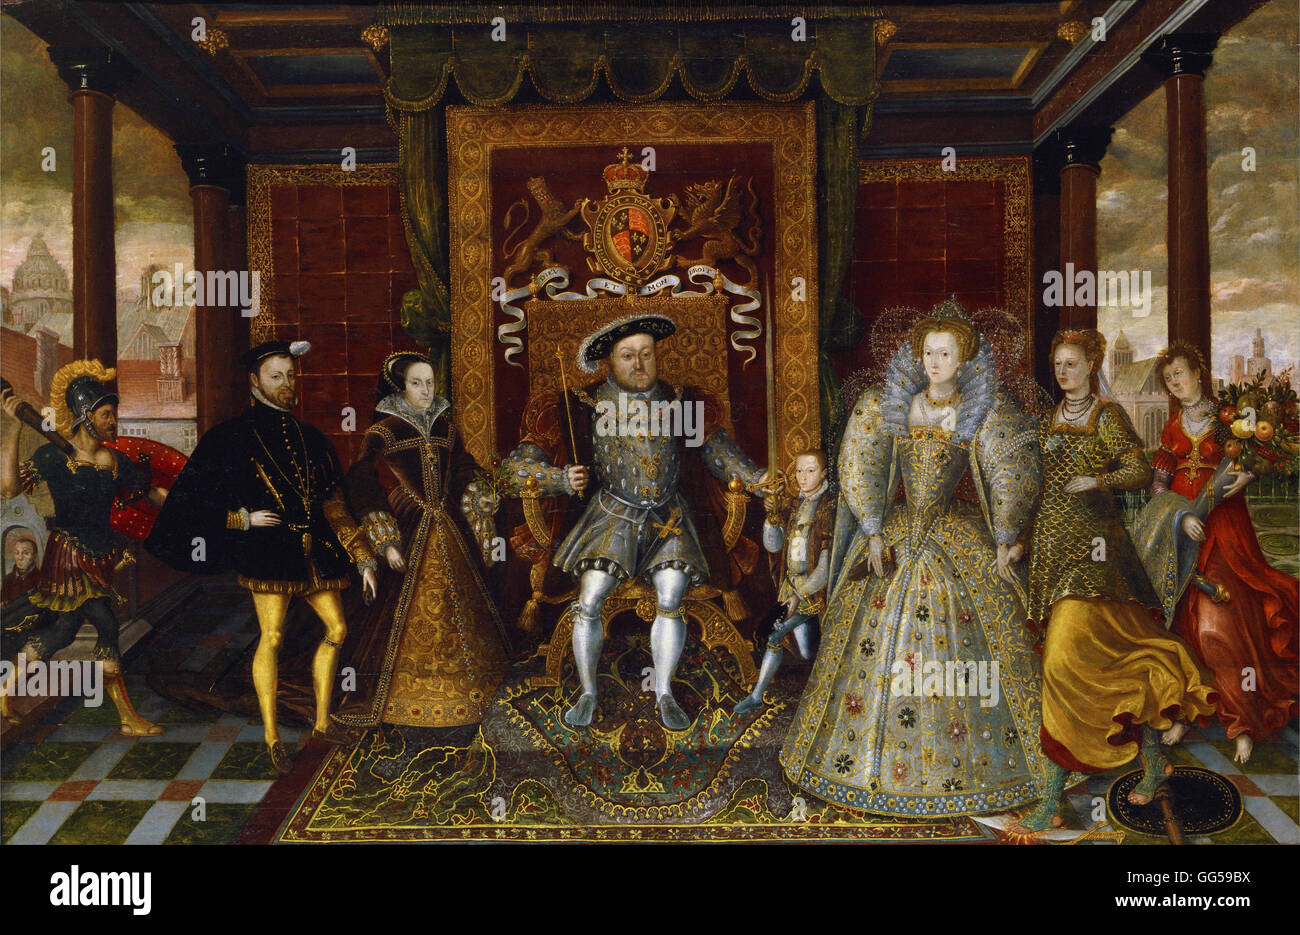 An Allegory of the Tudor Succession- The Family of Henry VIII - Stock Image